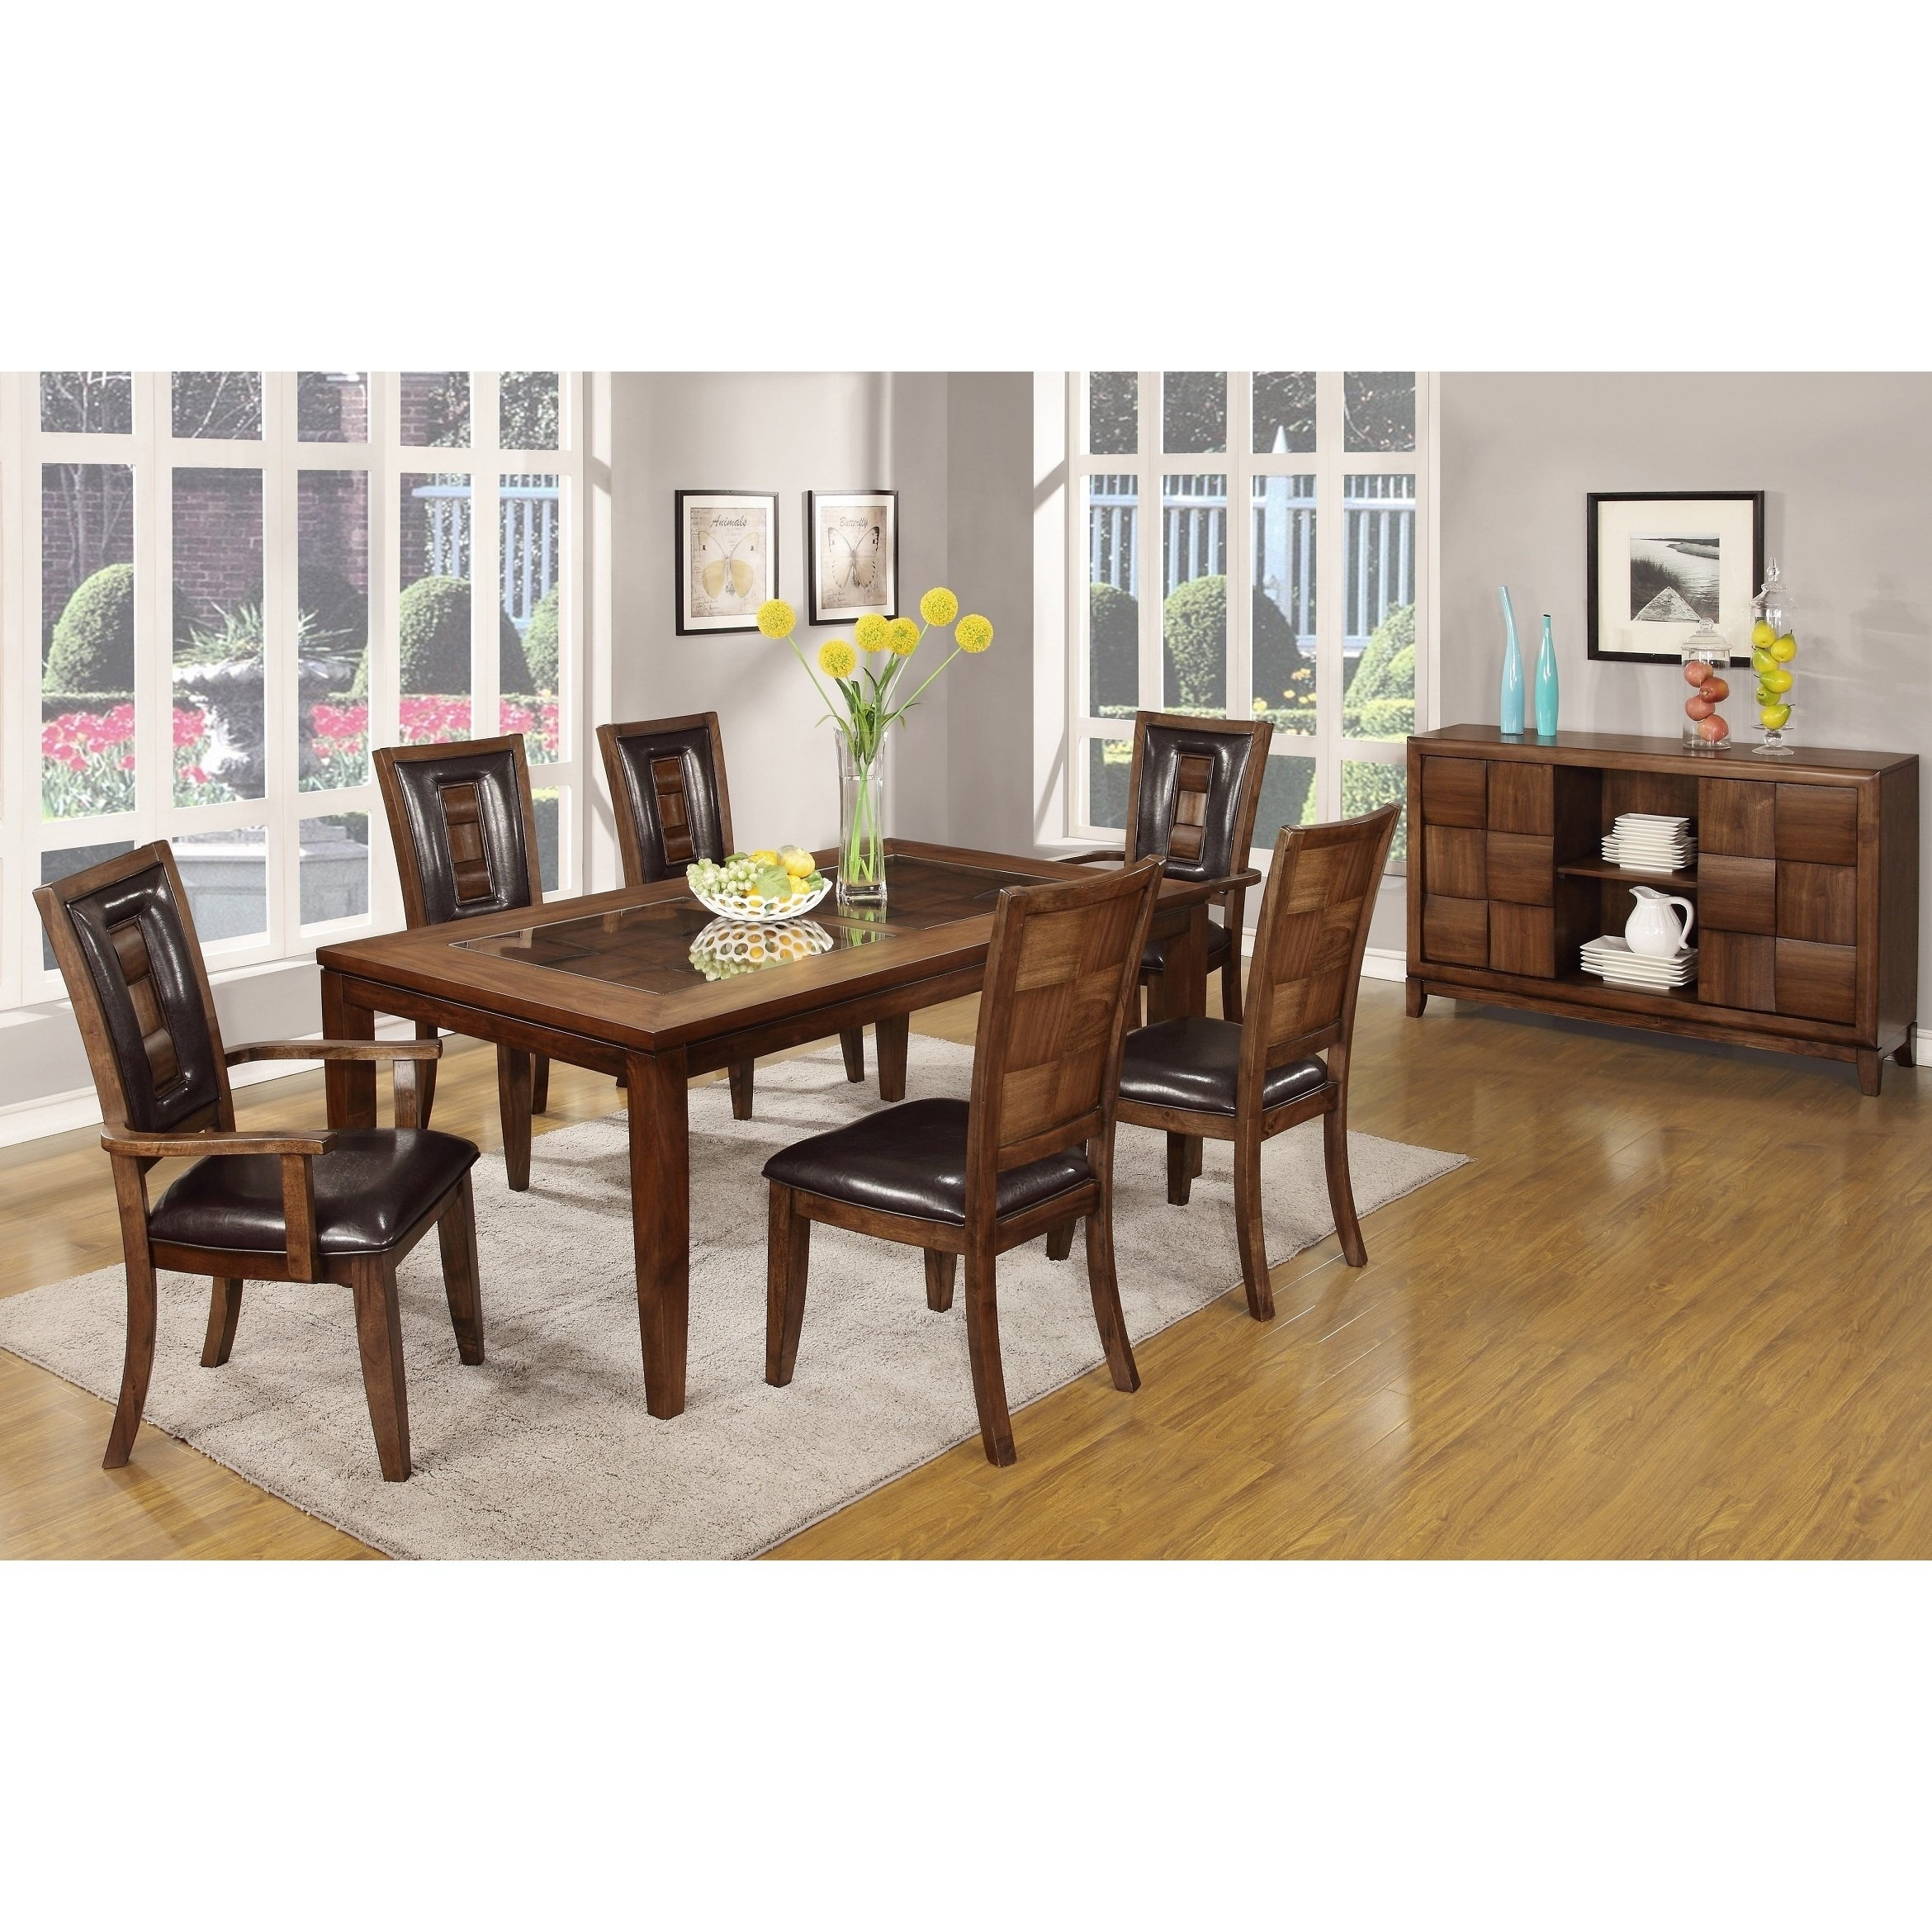 Featured Image of Parquet 6 Piece Dining Sets